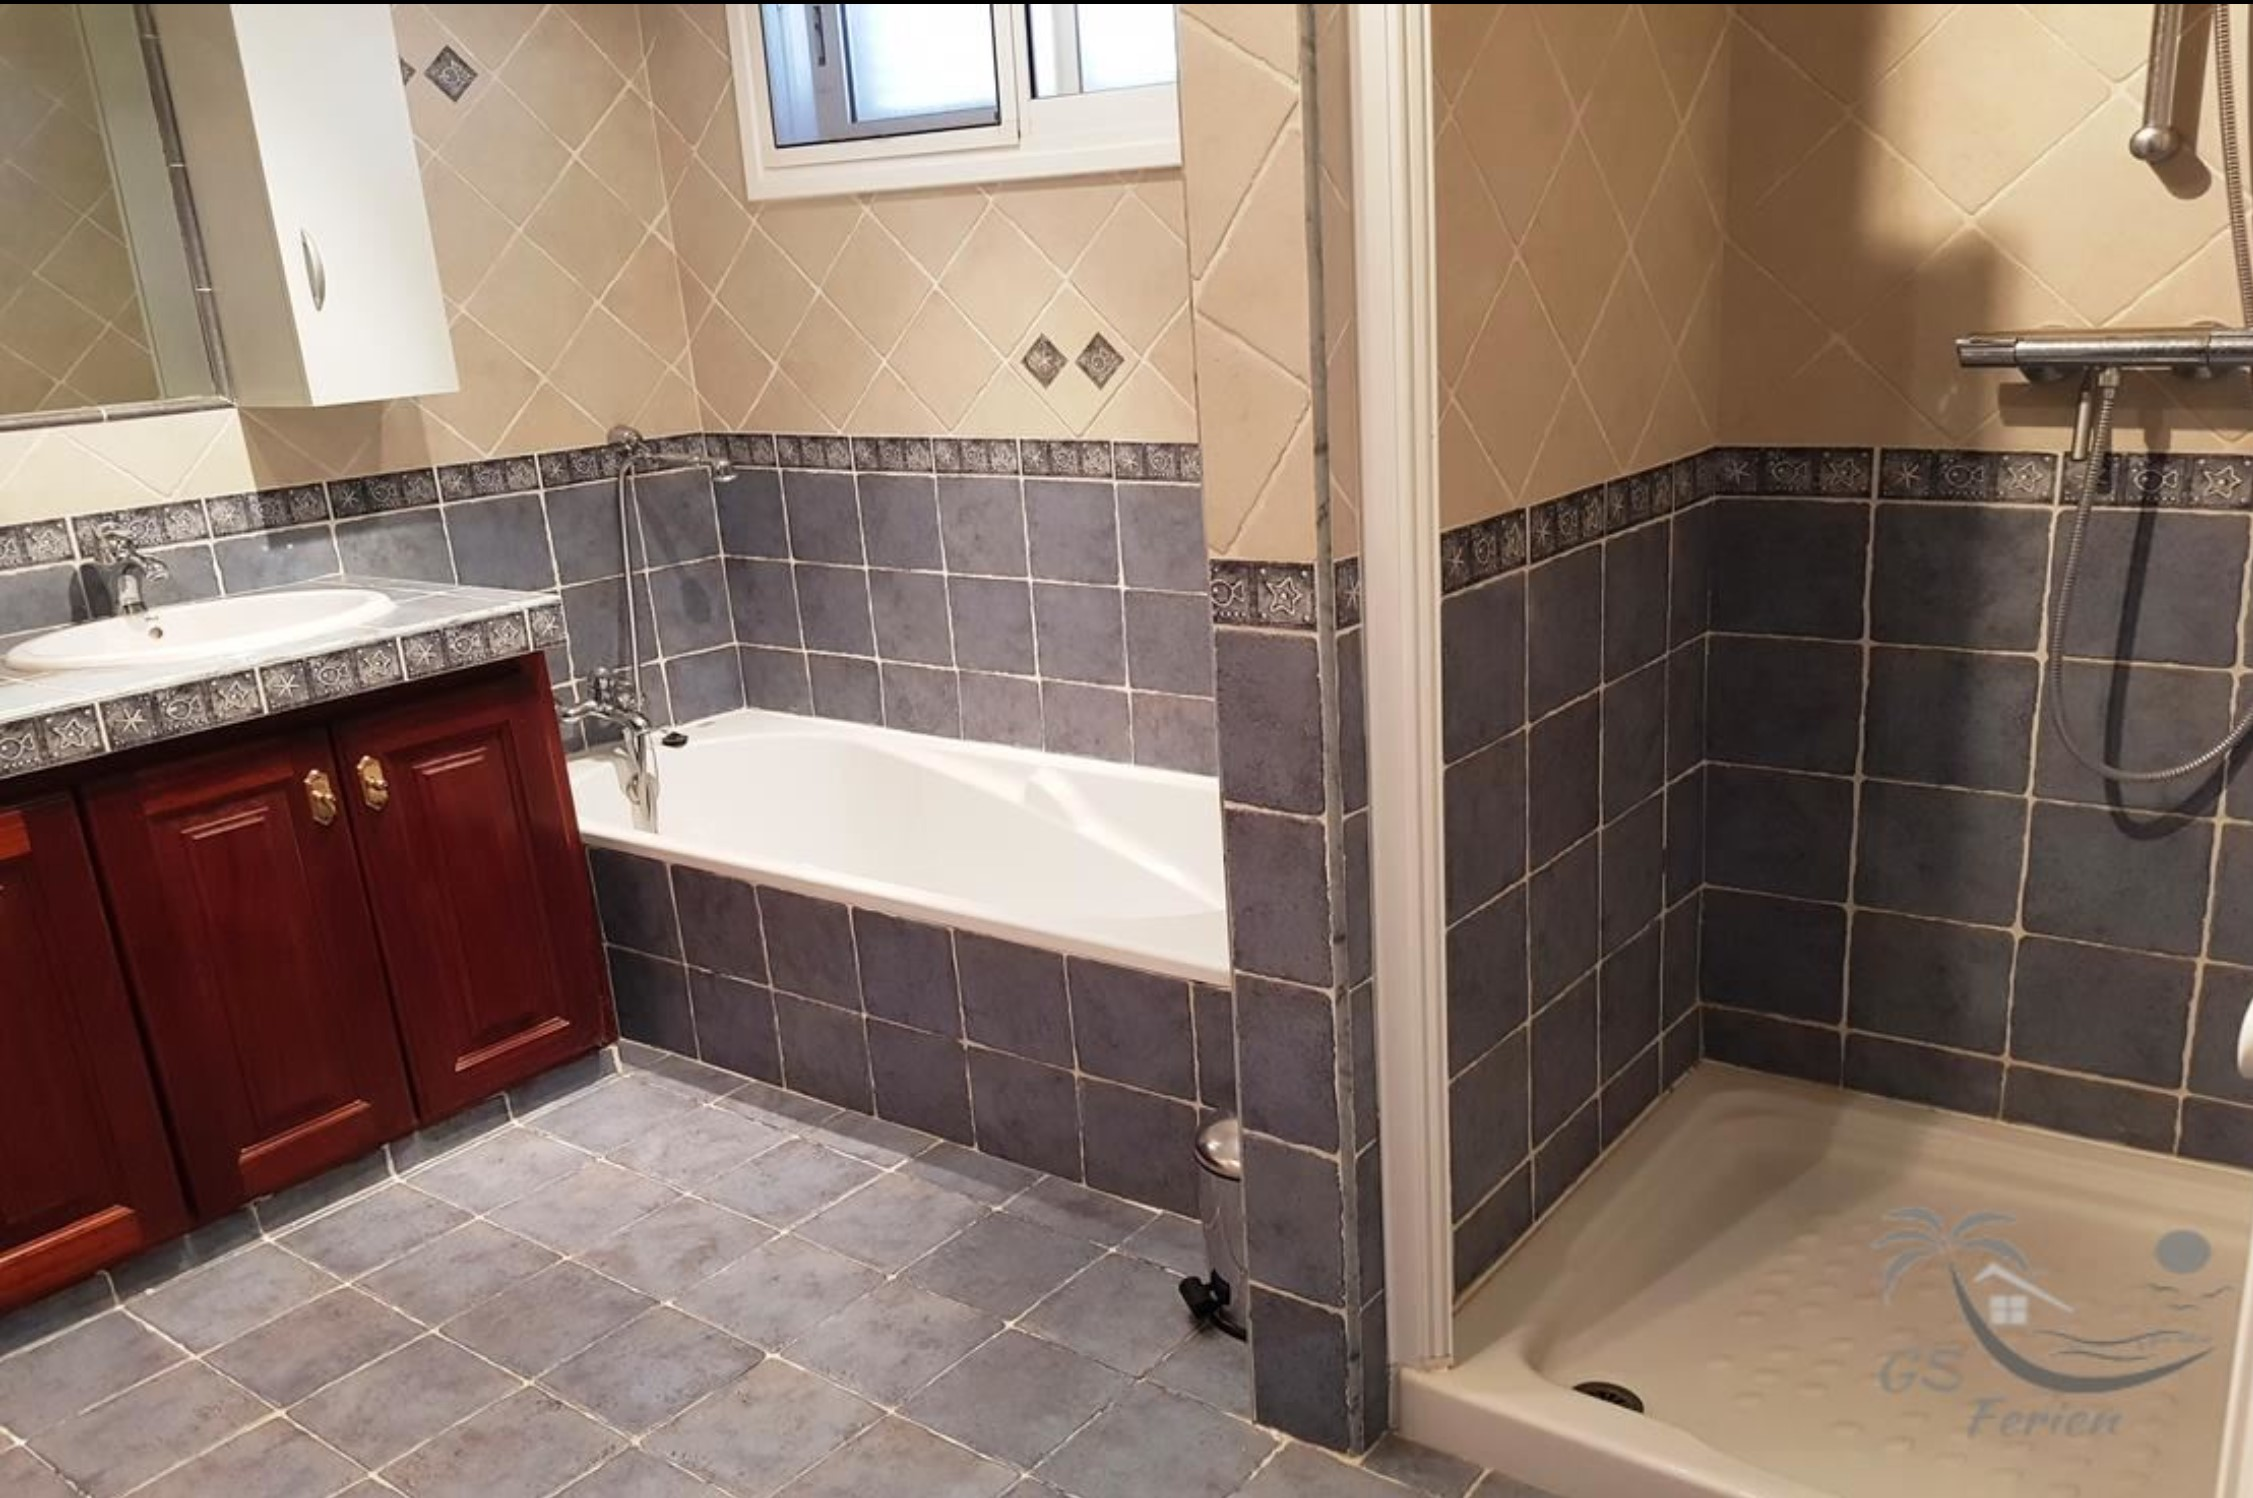 Badezimmer 1 / bathroom 1